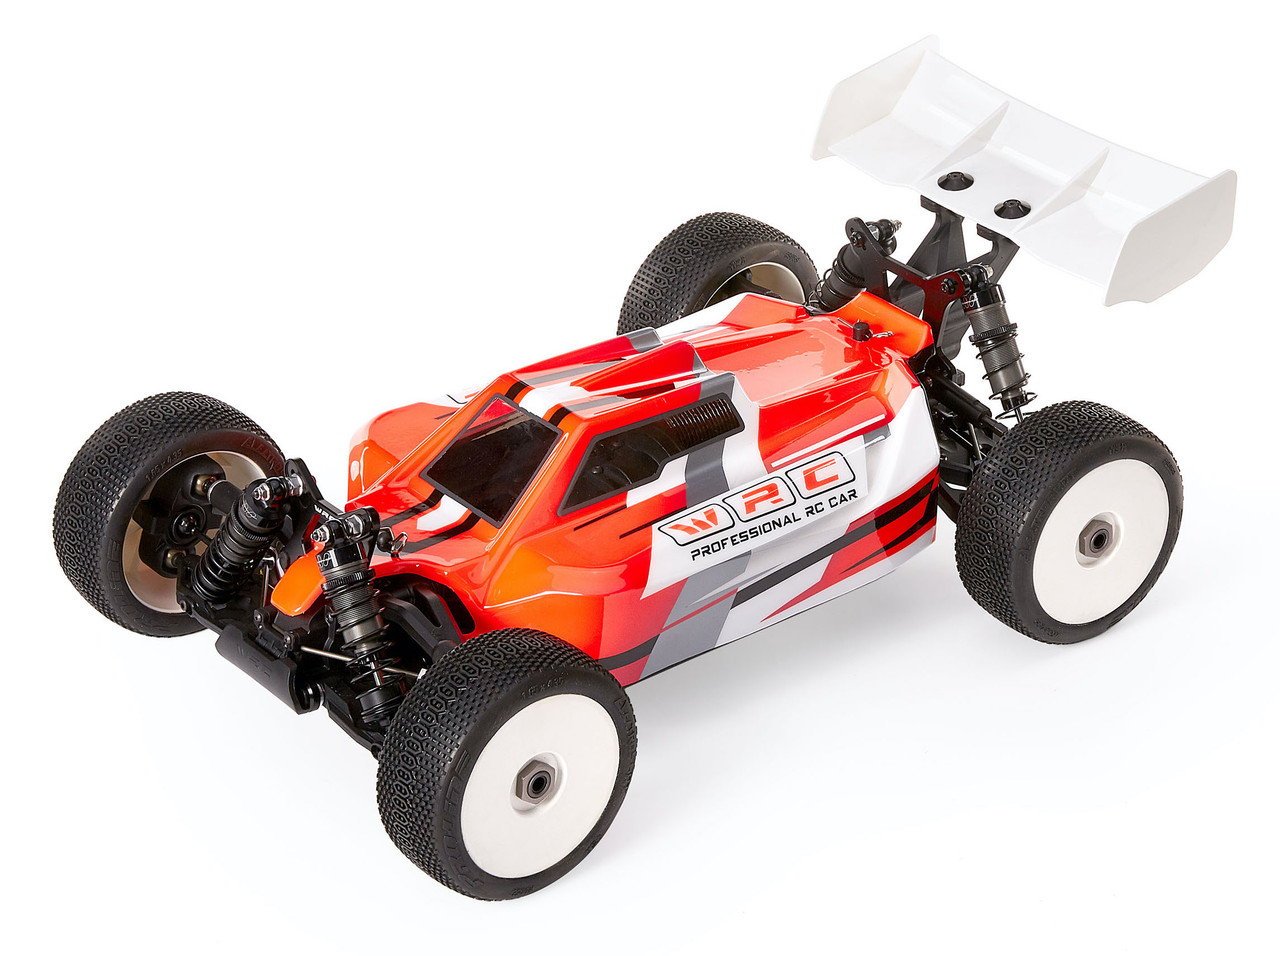 WRC SBXE.1 Electric 1/8th Off-road Buggy Kit